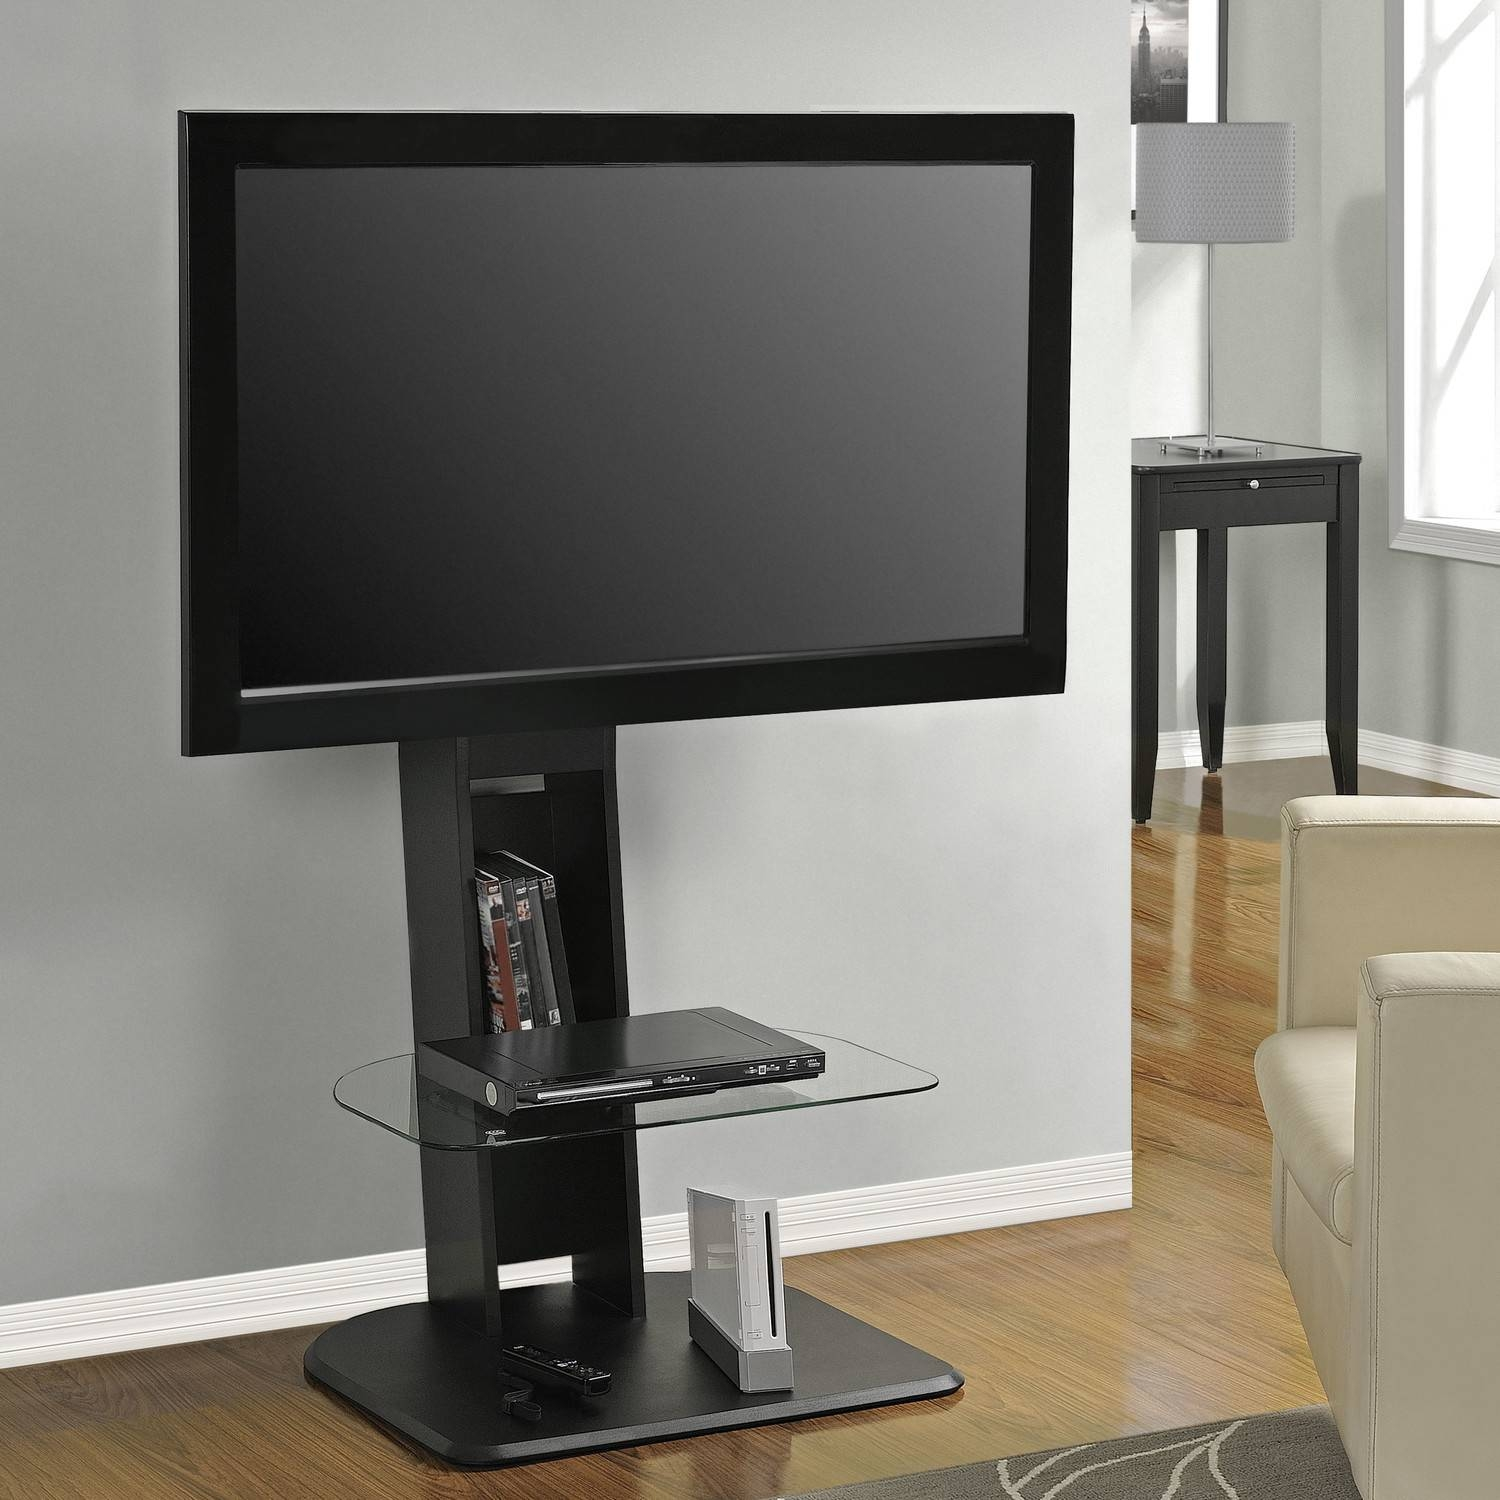 Bedroom : Tv Media Stand White Tv Stand Cheap Tv Cabinets Black inside Tall Black Tv Cabinets (Image 4 of 15)